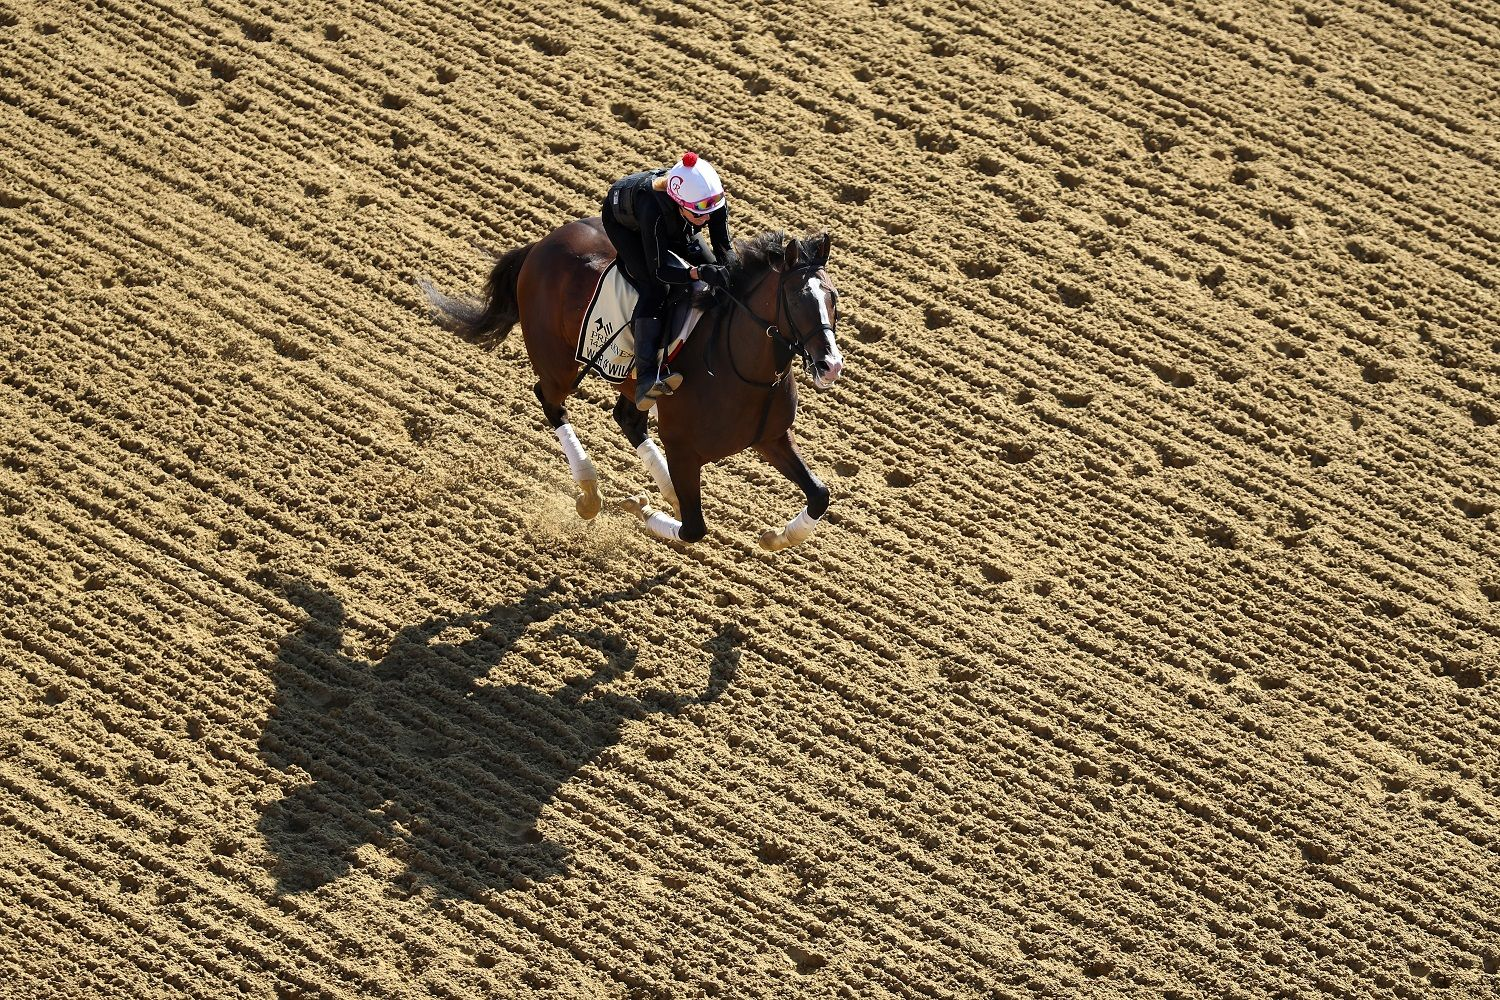 BALTIMORE, MARYLAND - MAY 15: War of Will trains on the track during a training session for the upcoming Preakness Stakes at Pimlico Race Course on May 15, 2019 in Baltimore, Maryland. (Photo by Rob Carr/Getty Images)